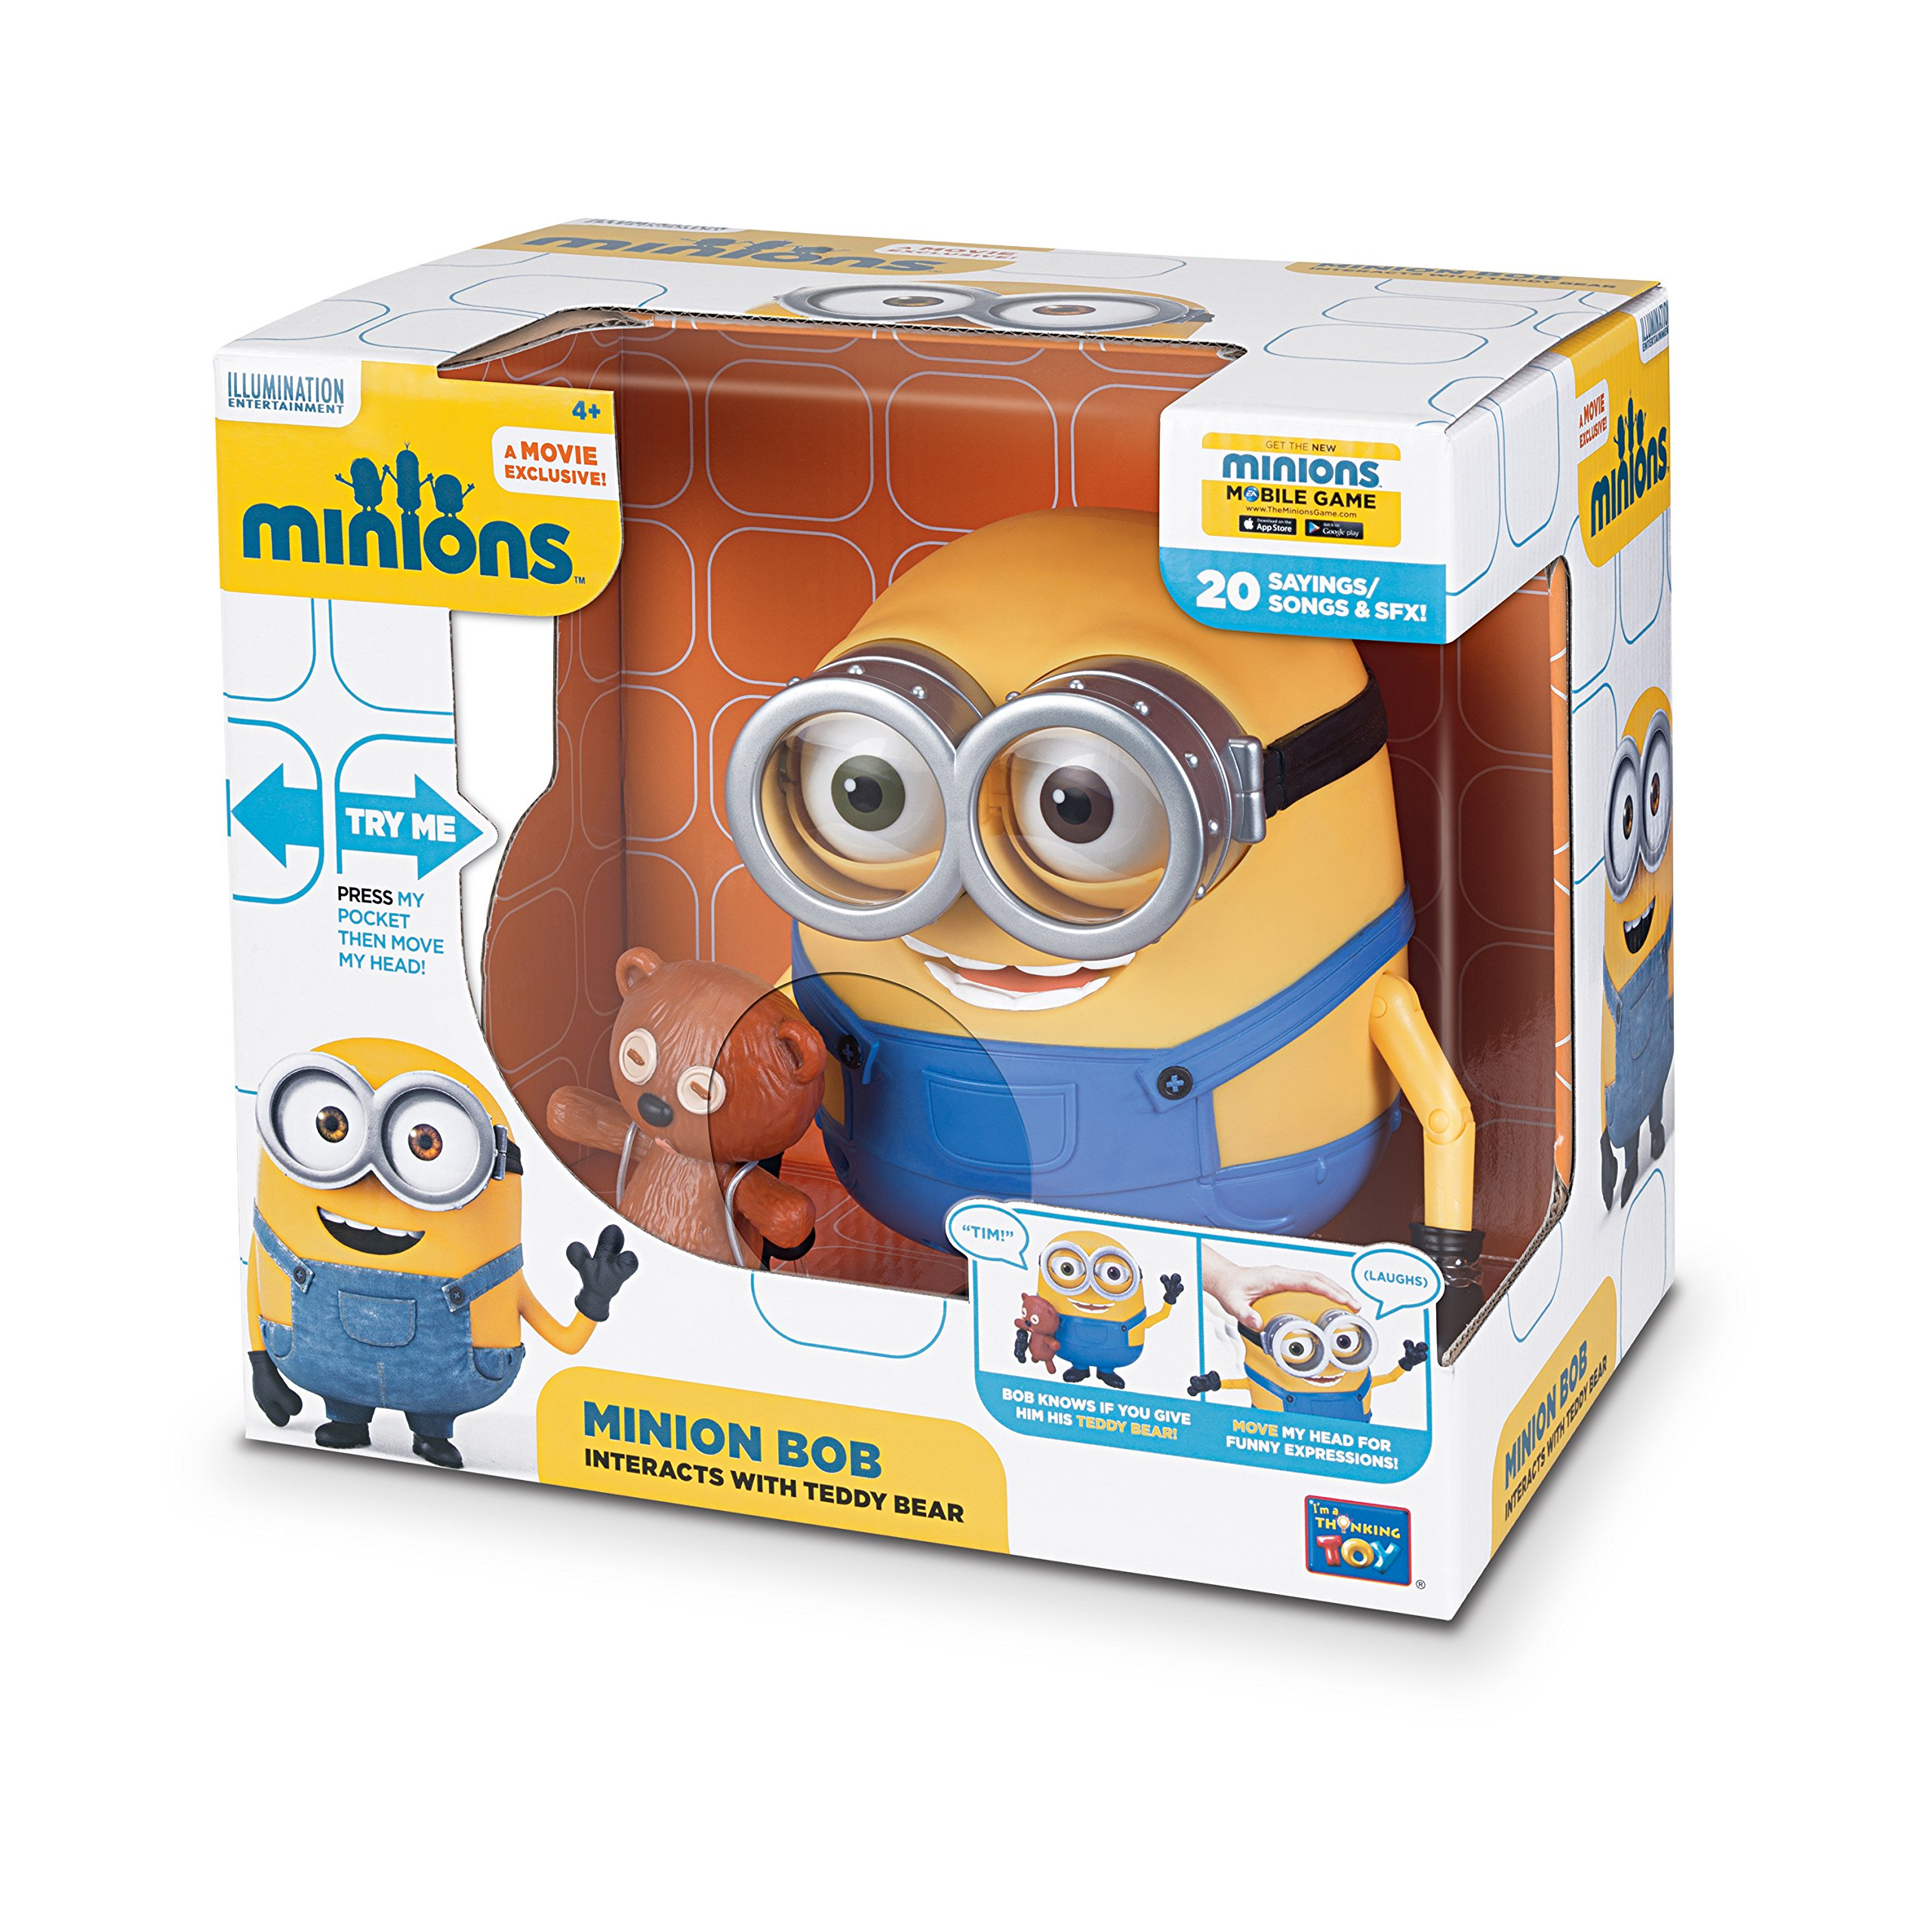 Minions Bob Interacts with Teddy Bear by Despicable Me